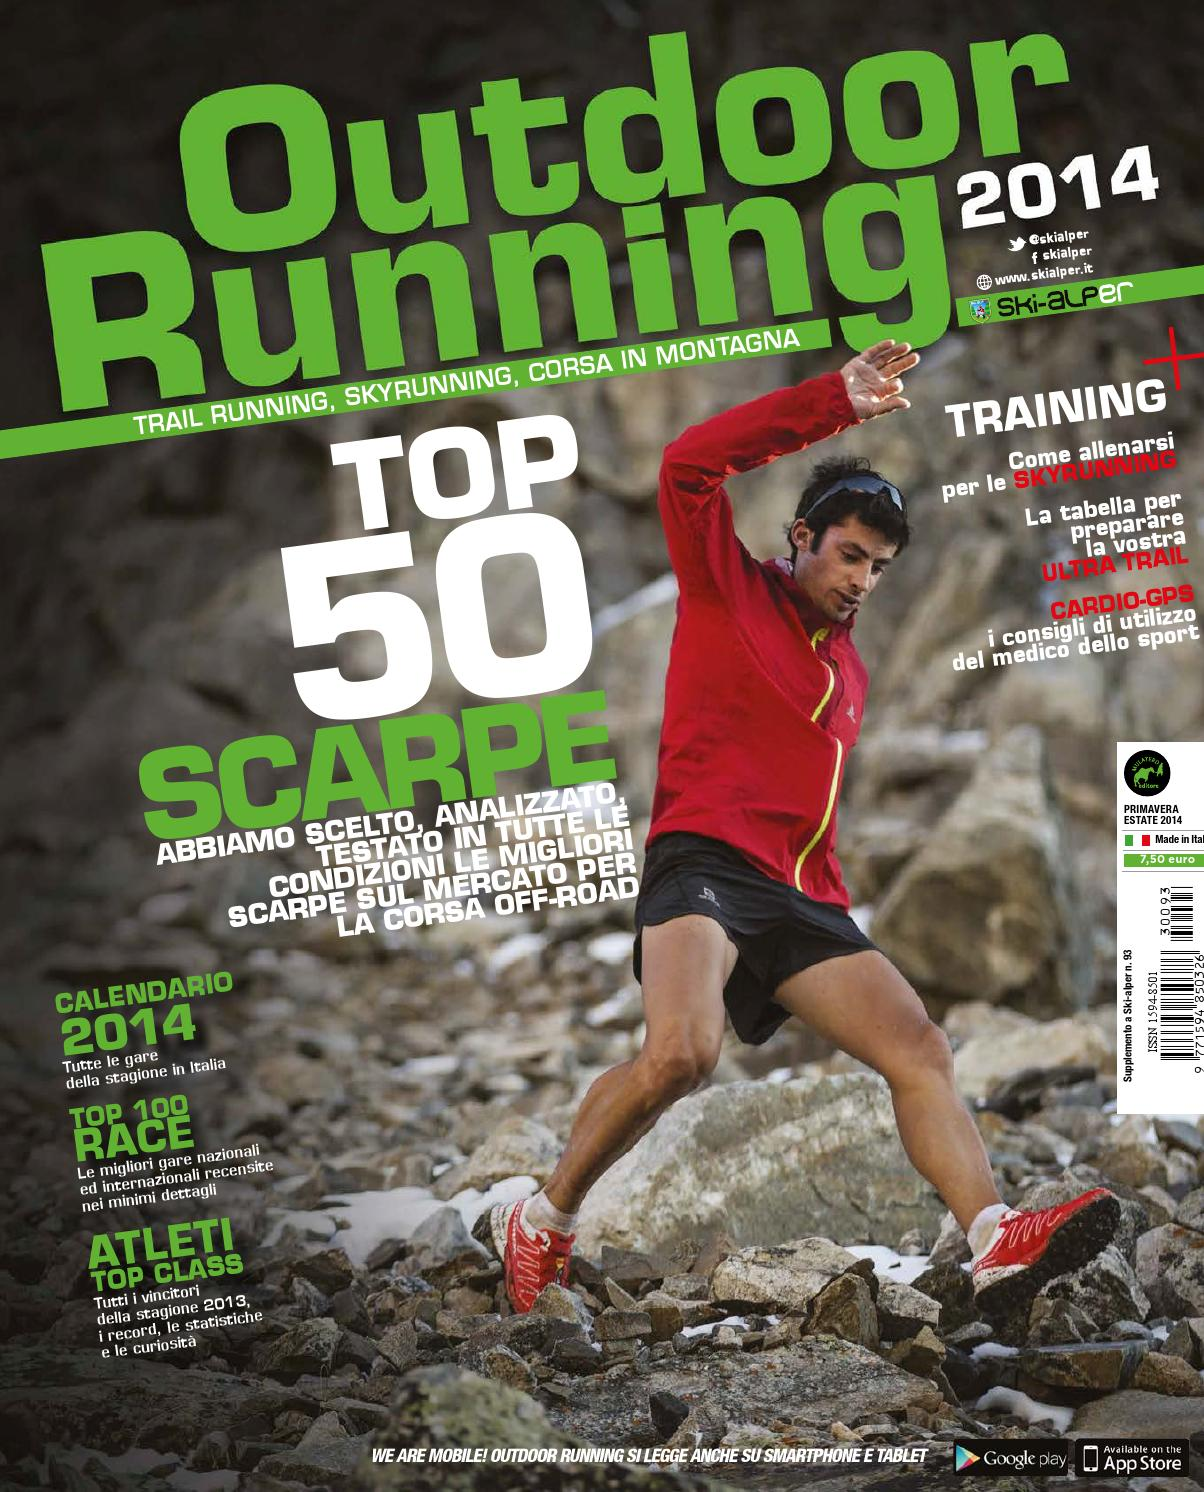 Outdoor Running 2014 by Mulatero Editore - issuu 3b8eb2ec5c1